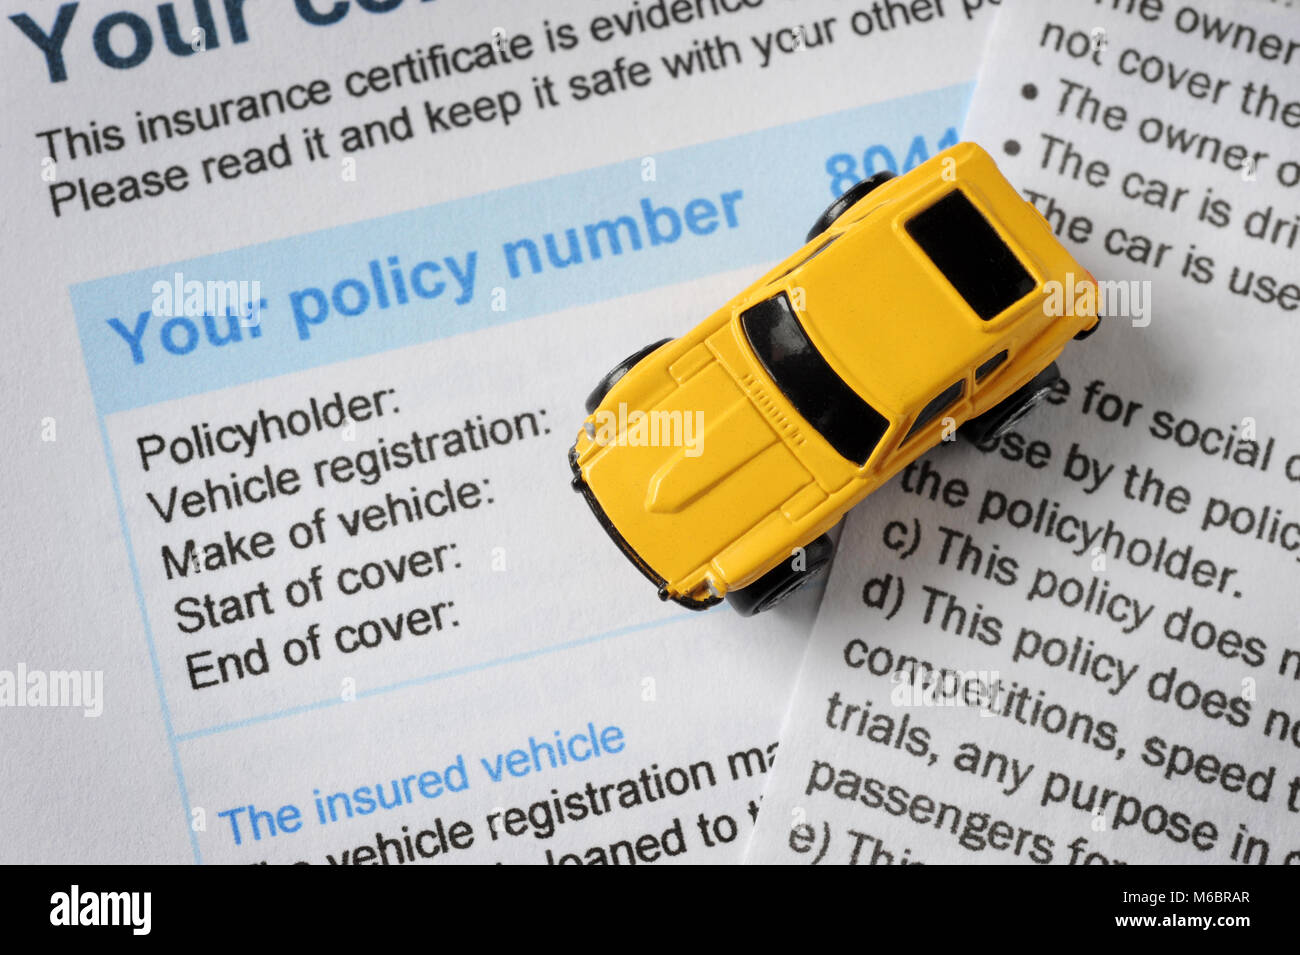 TOY CAR WITH CAR INSURANCE CERTIFICATE RE CLAIMS MOTORS POLICY RISING PREMIUMS COST ETC UK Stock Photo